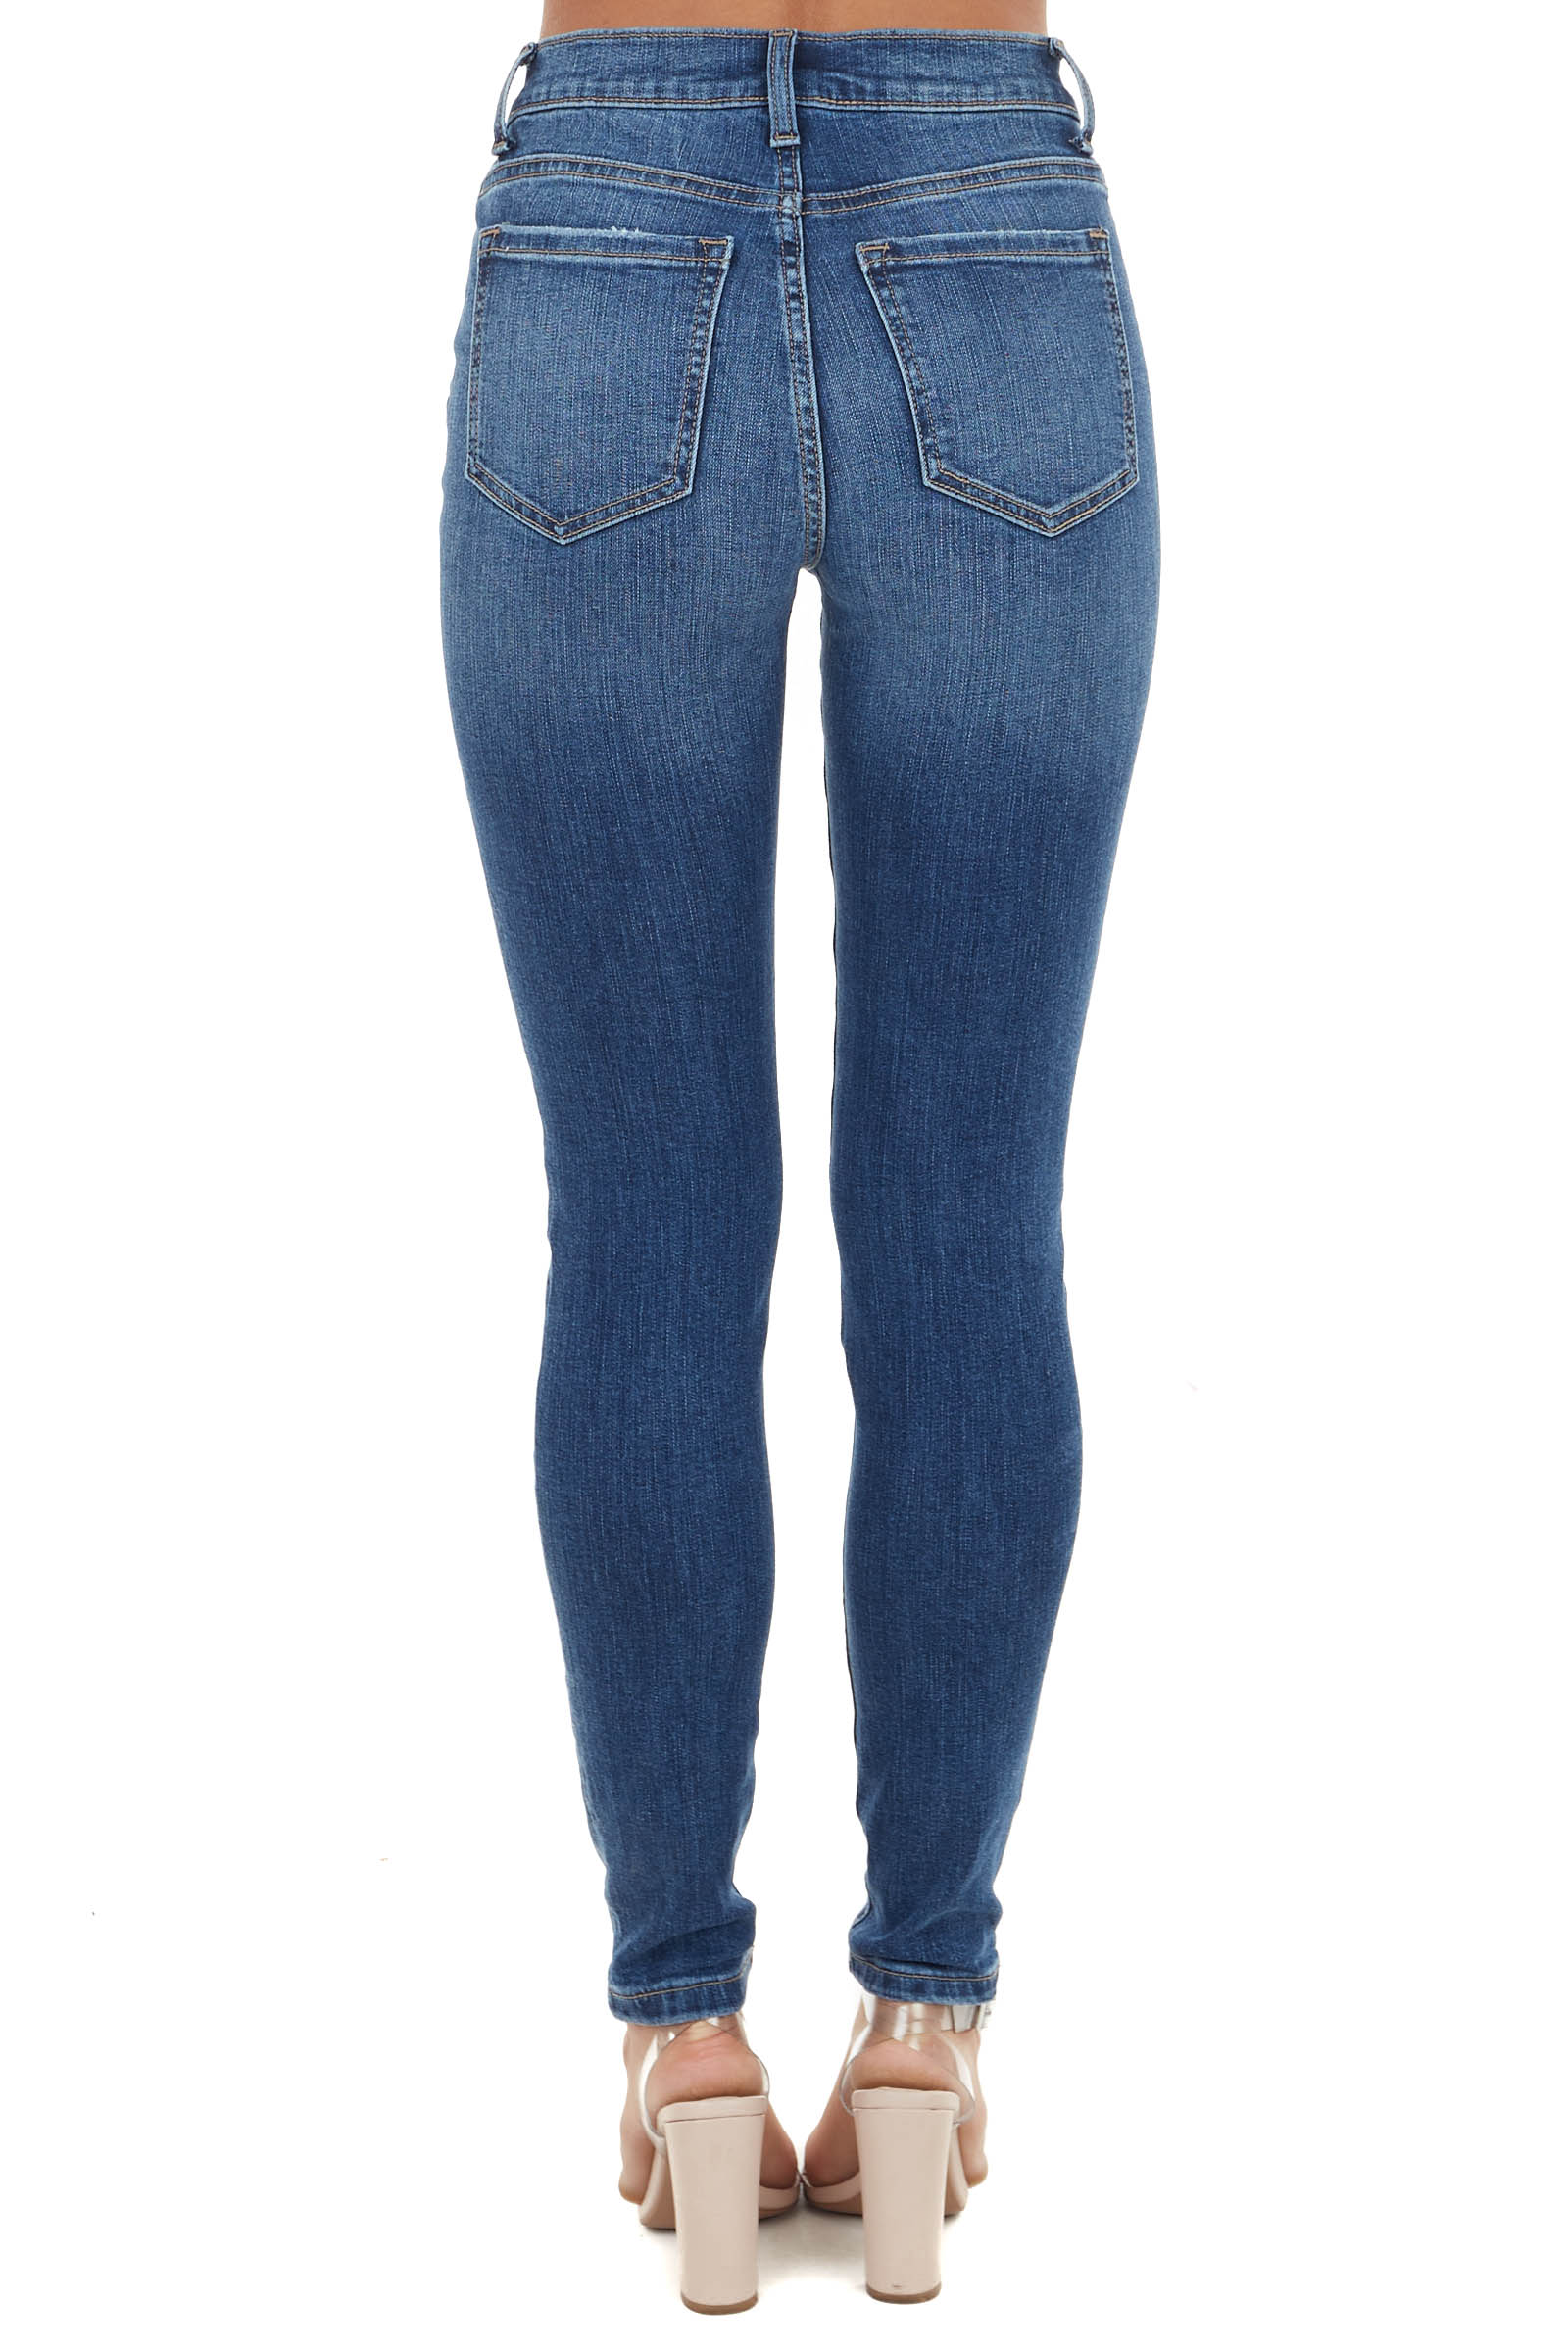 Medium Wash Mid Rise Skinny Jeans with Distressed Holes